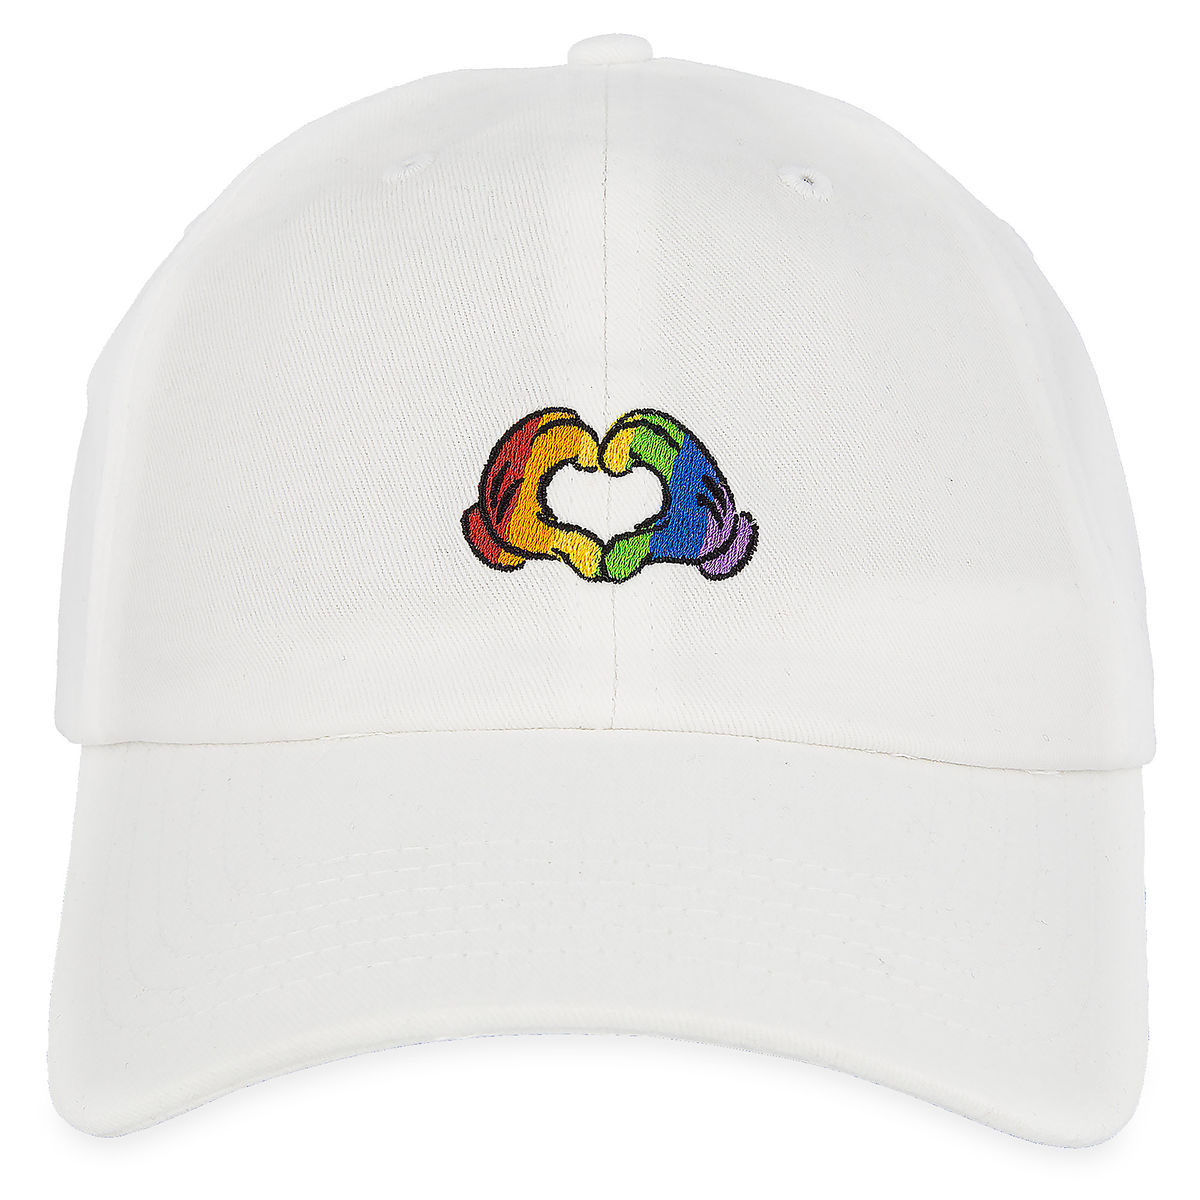 8e2e7e4b92c4b Add to My Lists. Disney Hat - Baseball Cap - Mickey Mouse ...